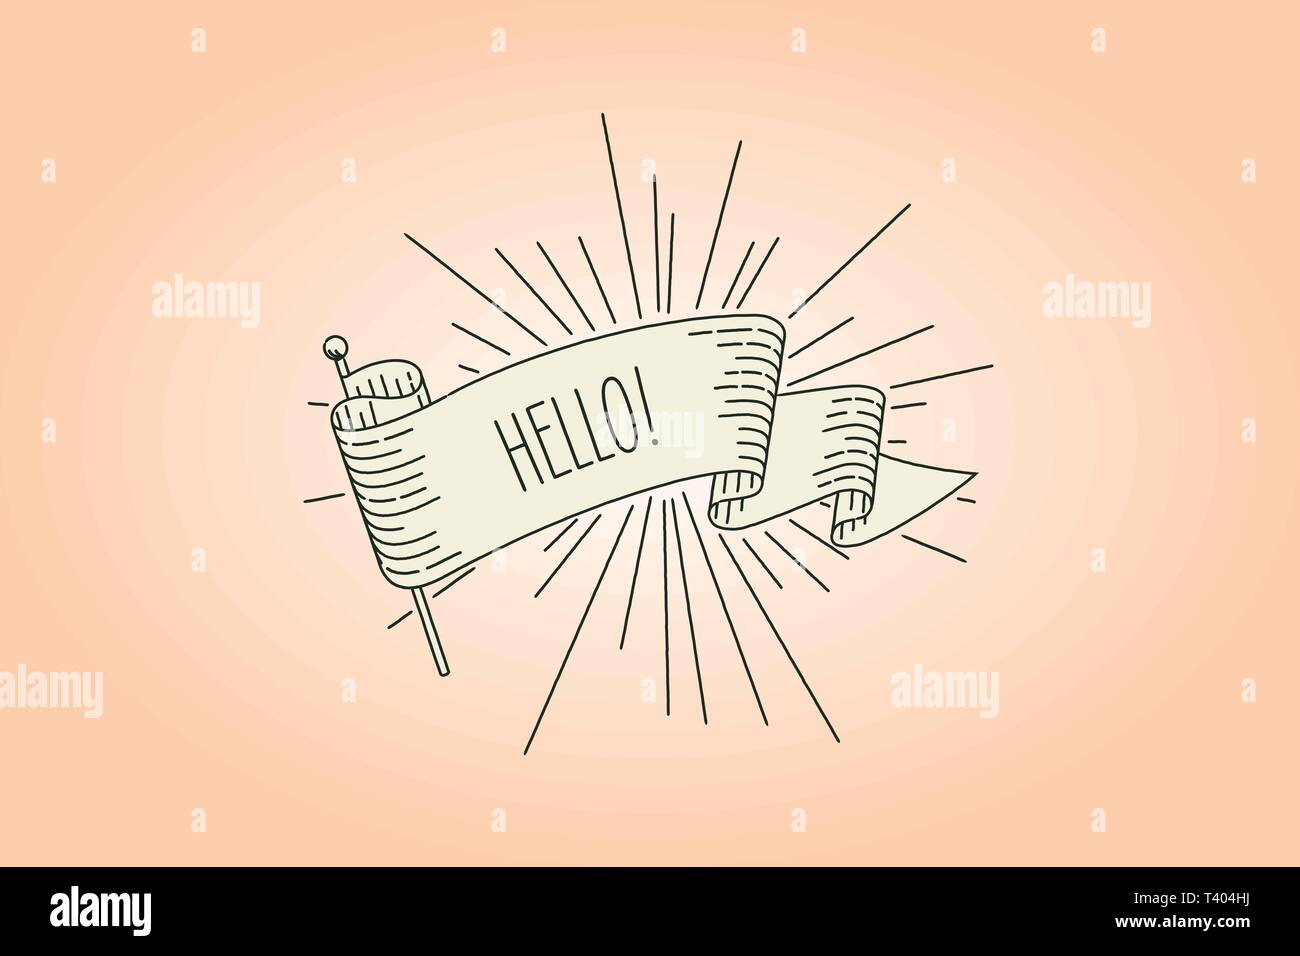 hello welocoming banner flag. Ribbon flag greeting card in vintage look with word hello, engraving style graphic. Retro design element. Vector Illustr - Stock Image